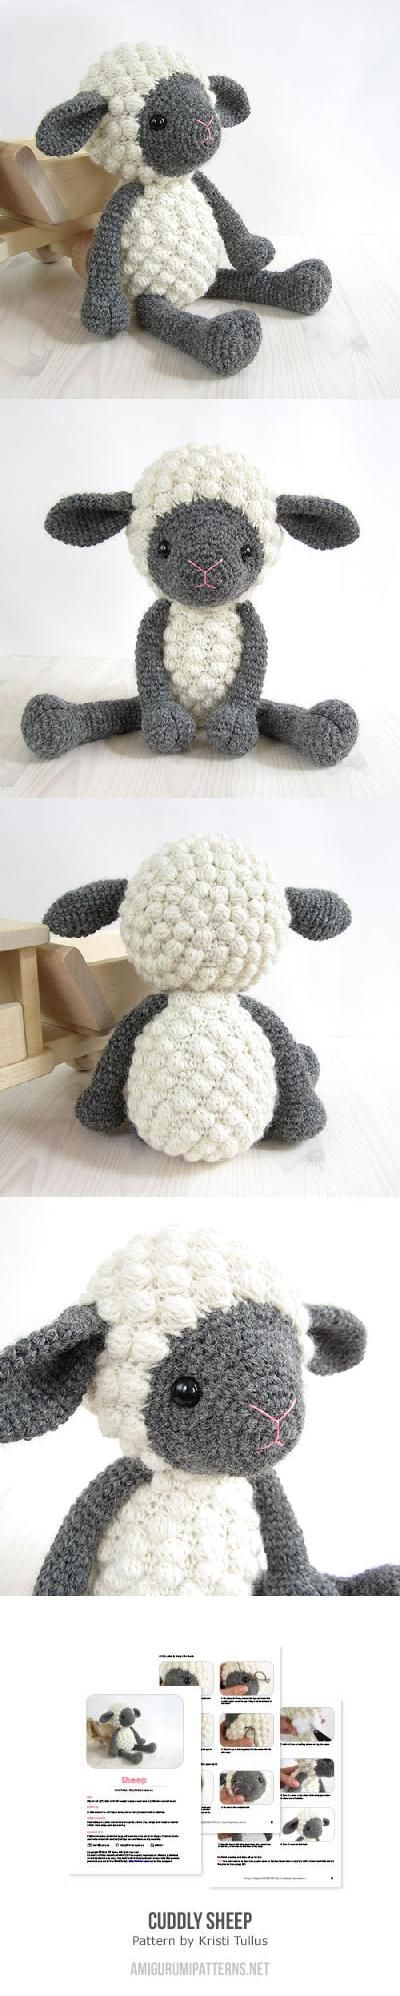 Cuddly sheep ✿⊱╮couldn't be more cute! try to make it!